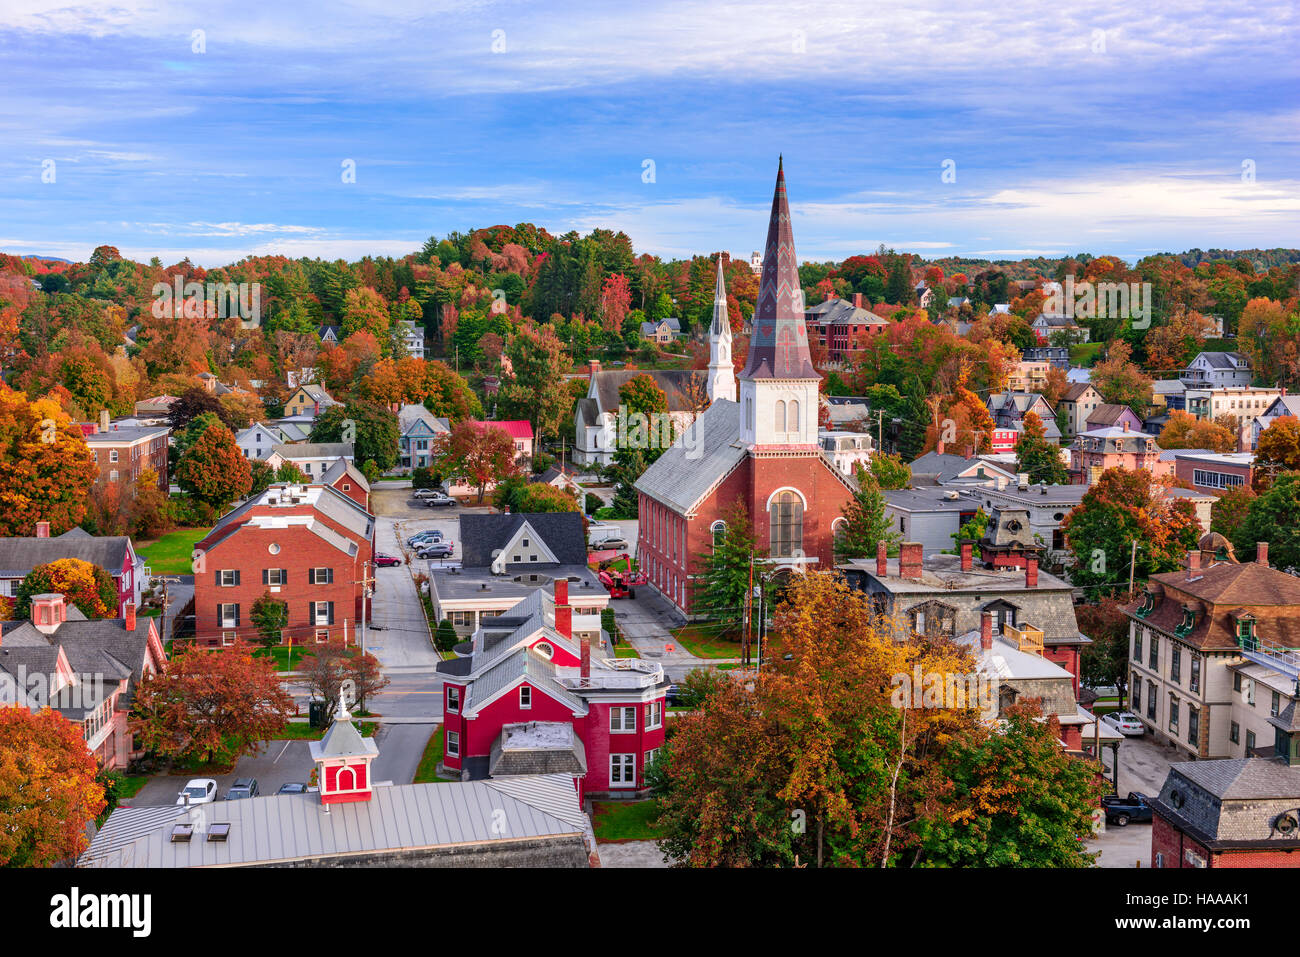 Small Villages In Usa Montpelier Vermont Usa Town Skyline Stock Photo Royalty